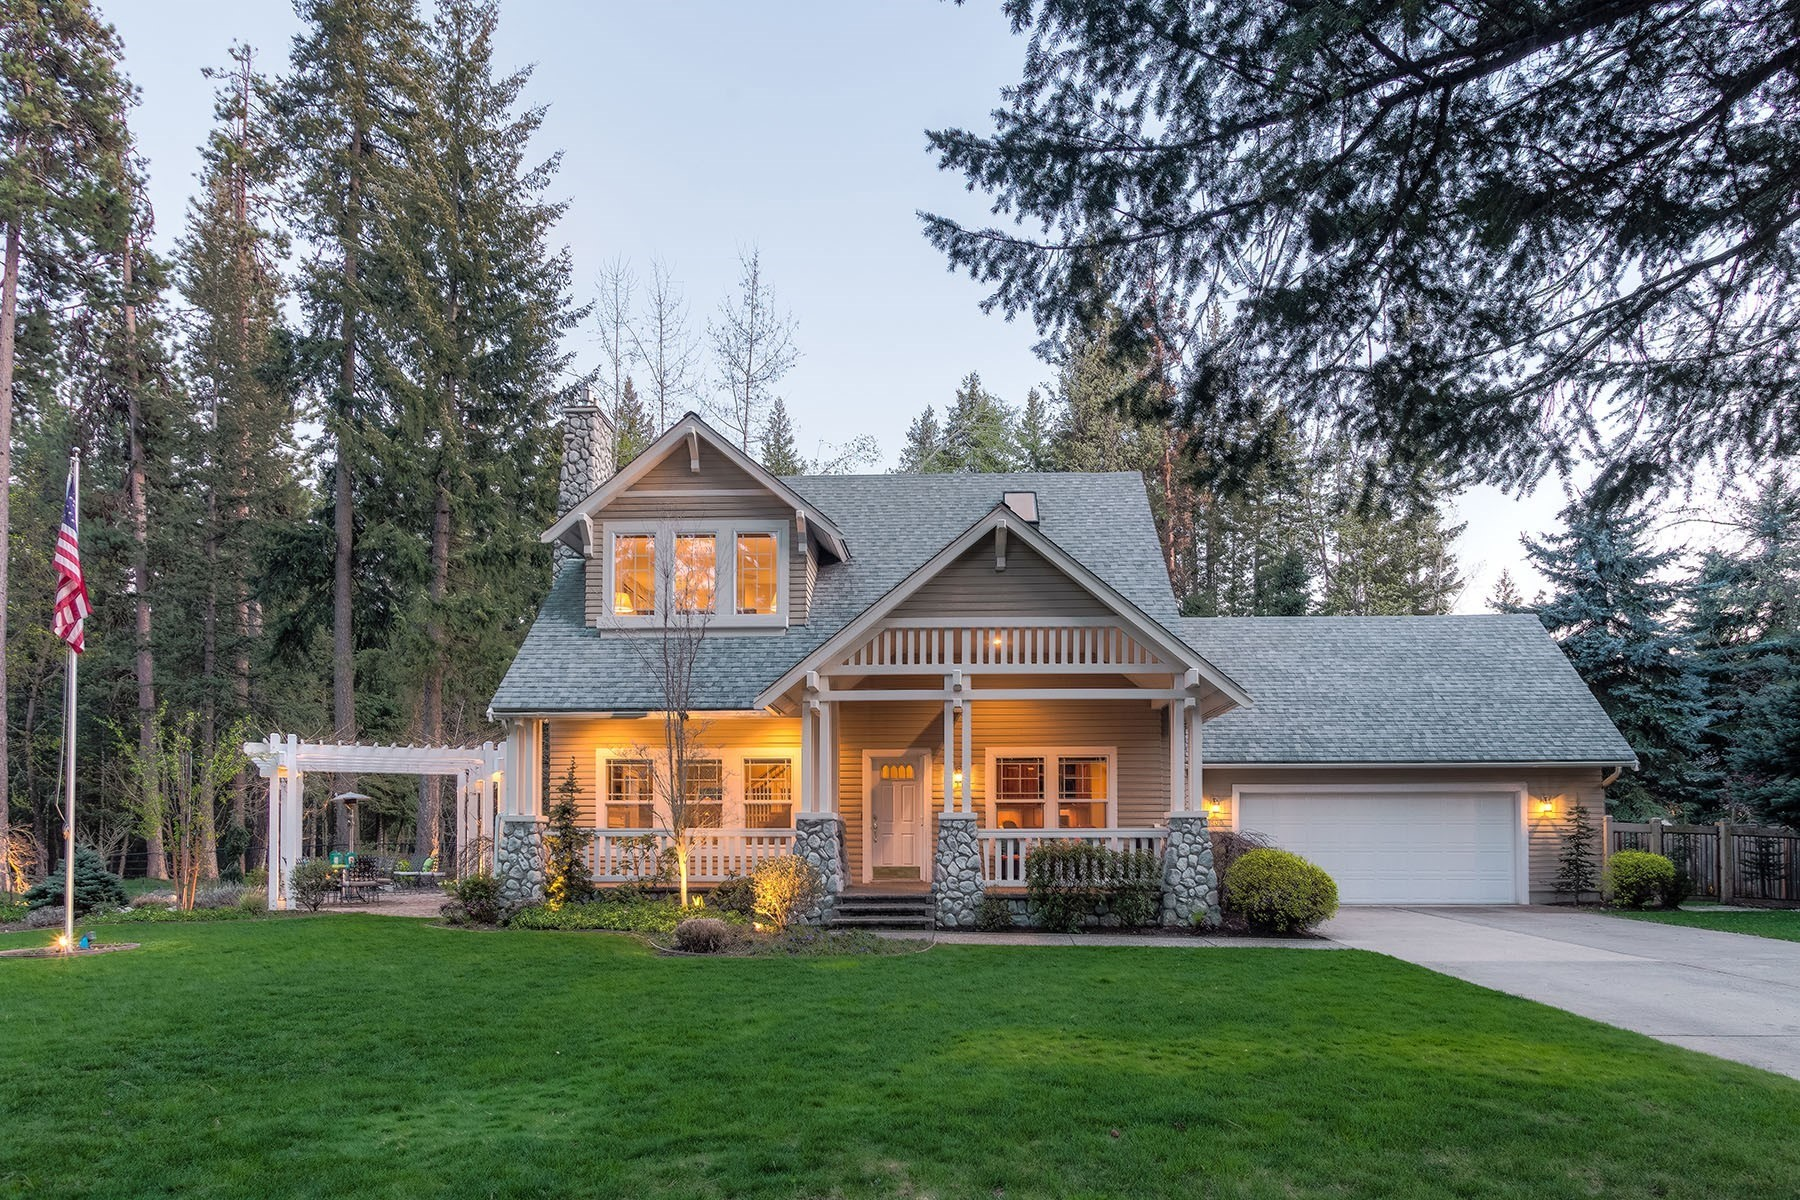 Single Family Home for Sale at Hayden Extraordinary Lifestyle Home 1800 E Hayden Ave Hayden Lake, Idaho, 83835 United States